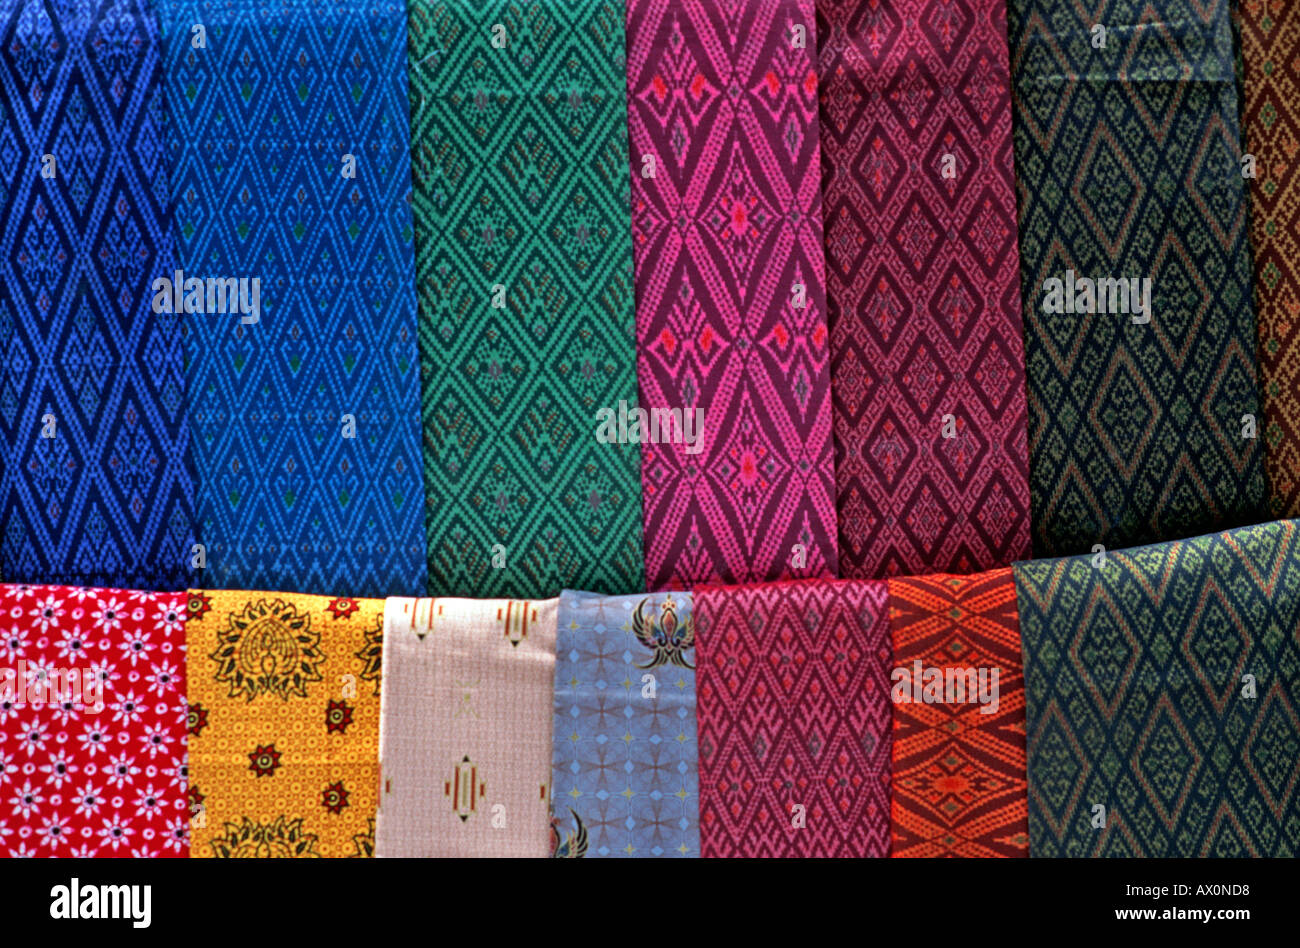 A selection of hand woven ikat patterned fabrics for sale for Patterned material for sale